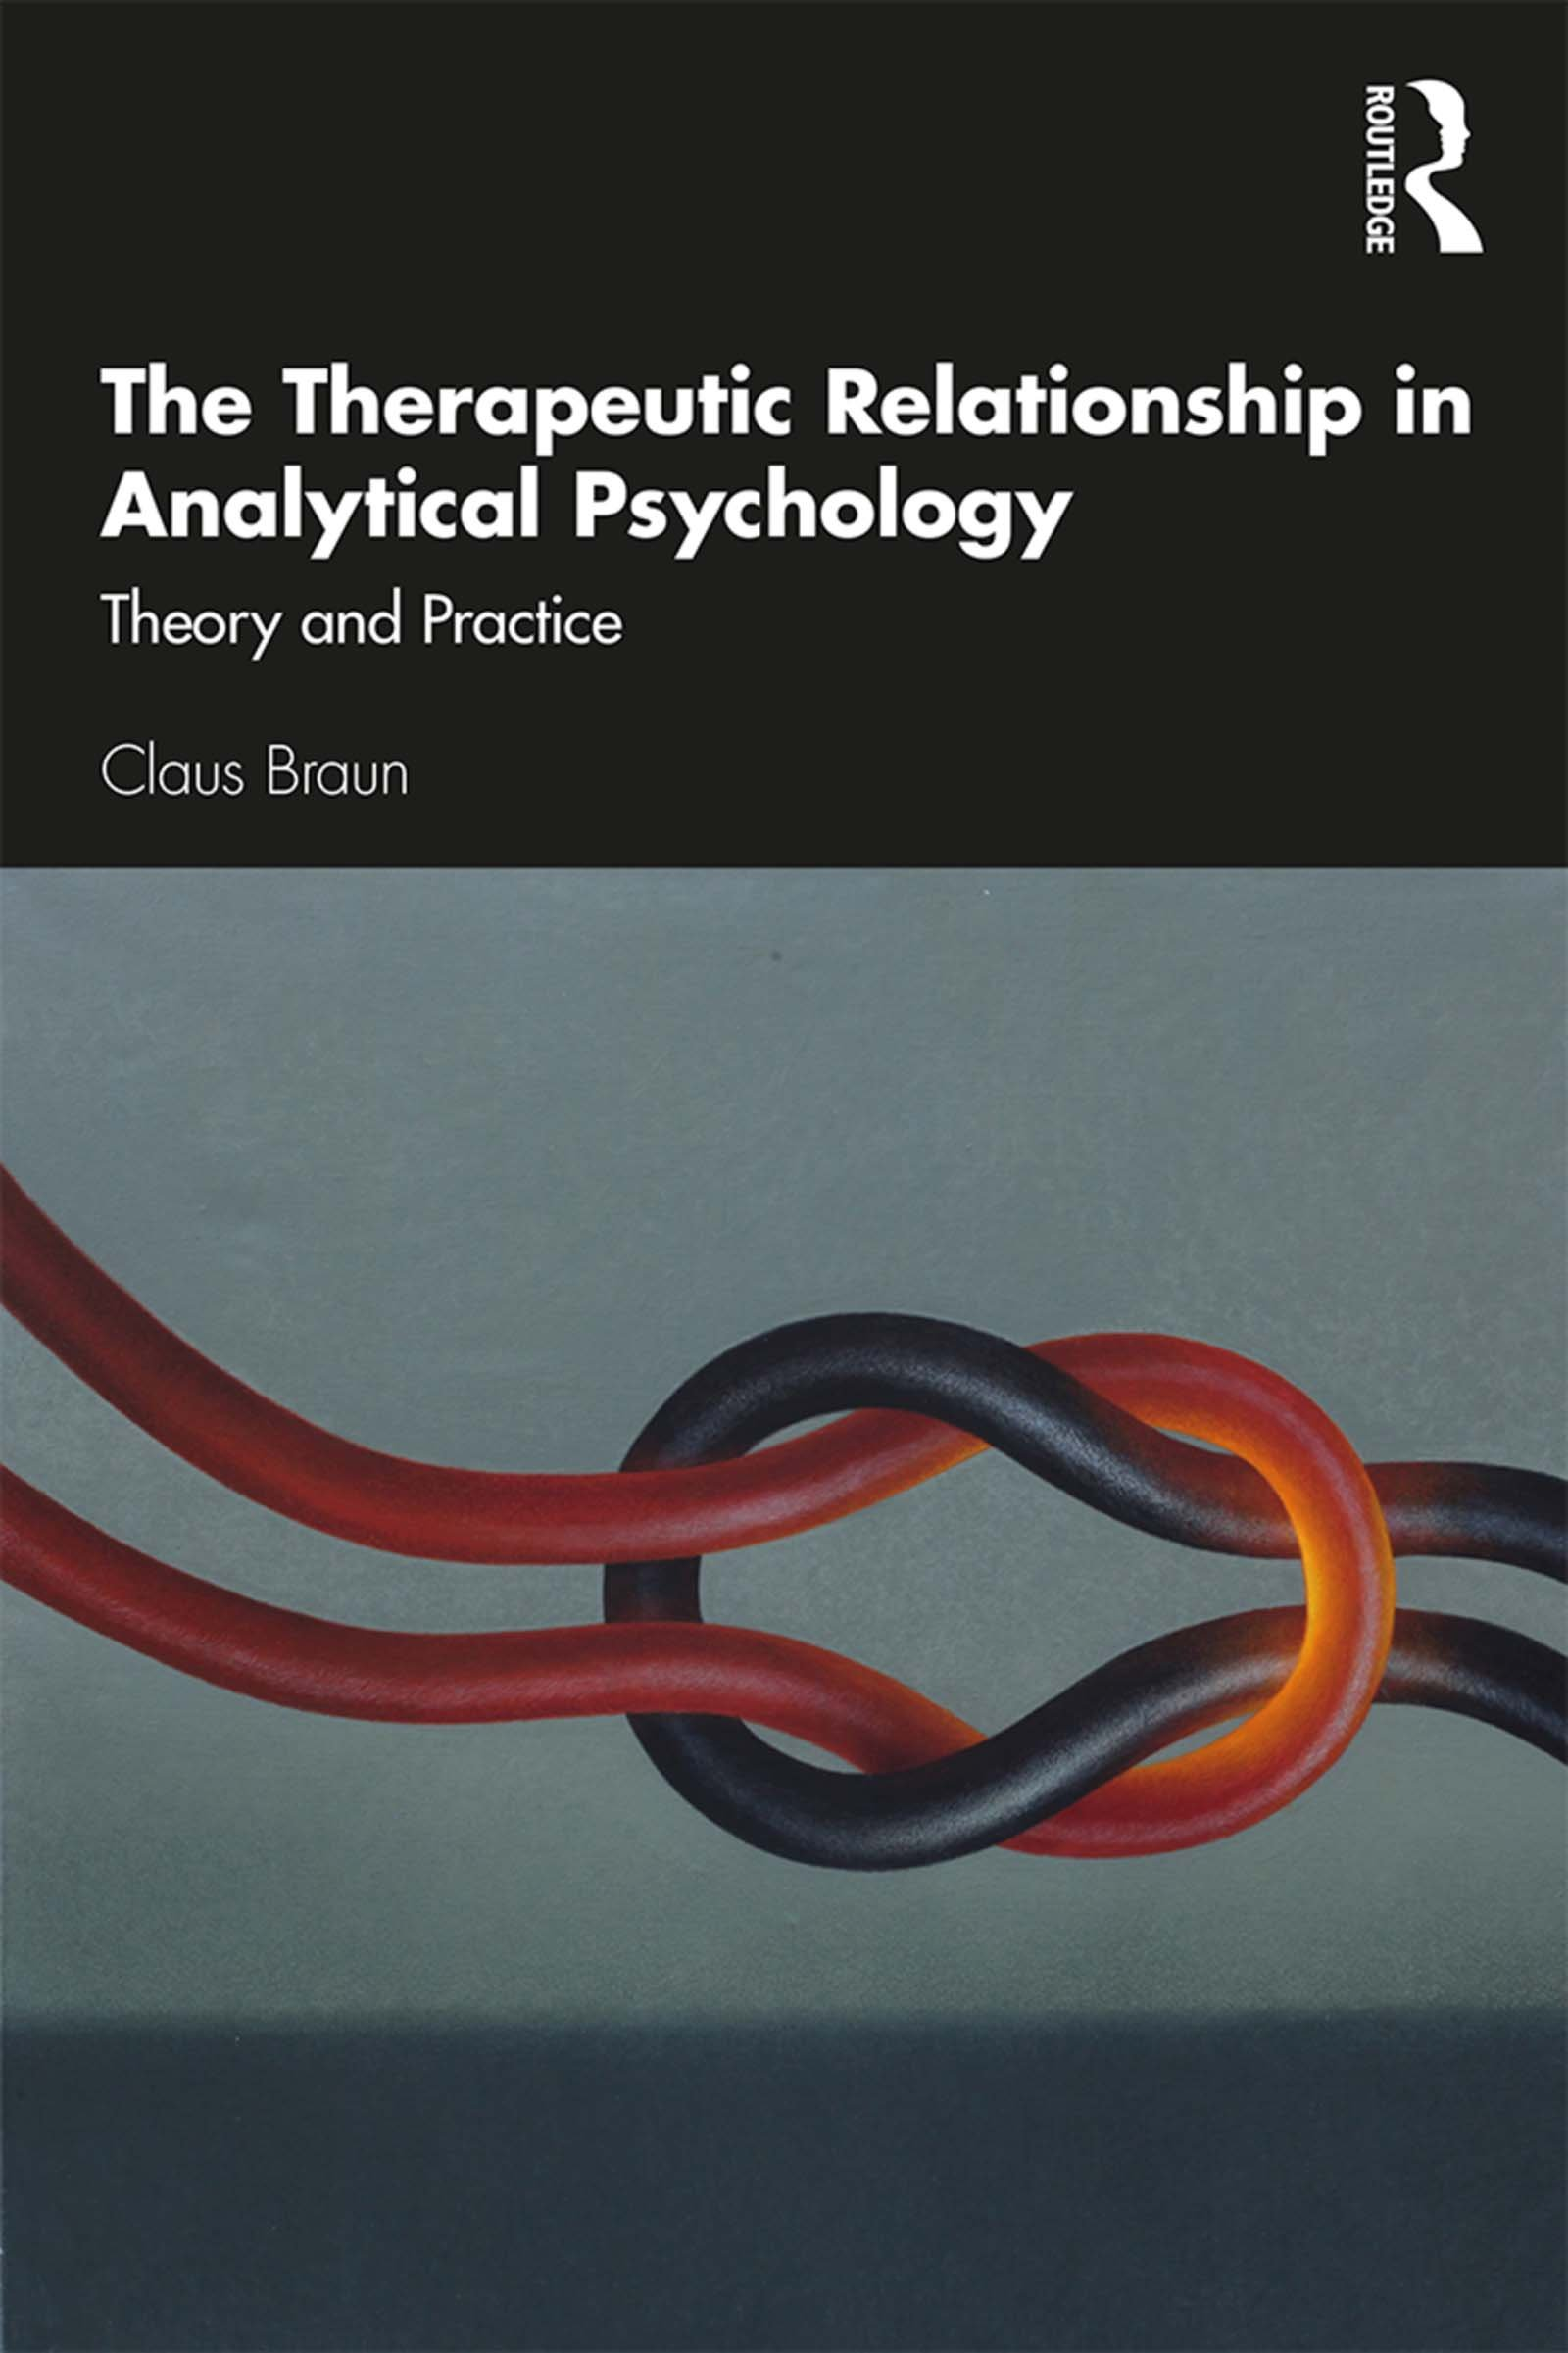 The Therapeutic Relationship in Analytical Psychology: Theory and Practice book cover